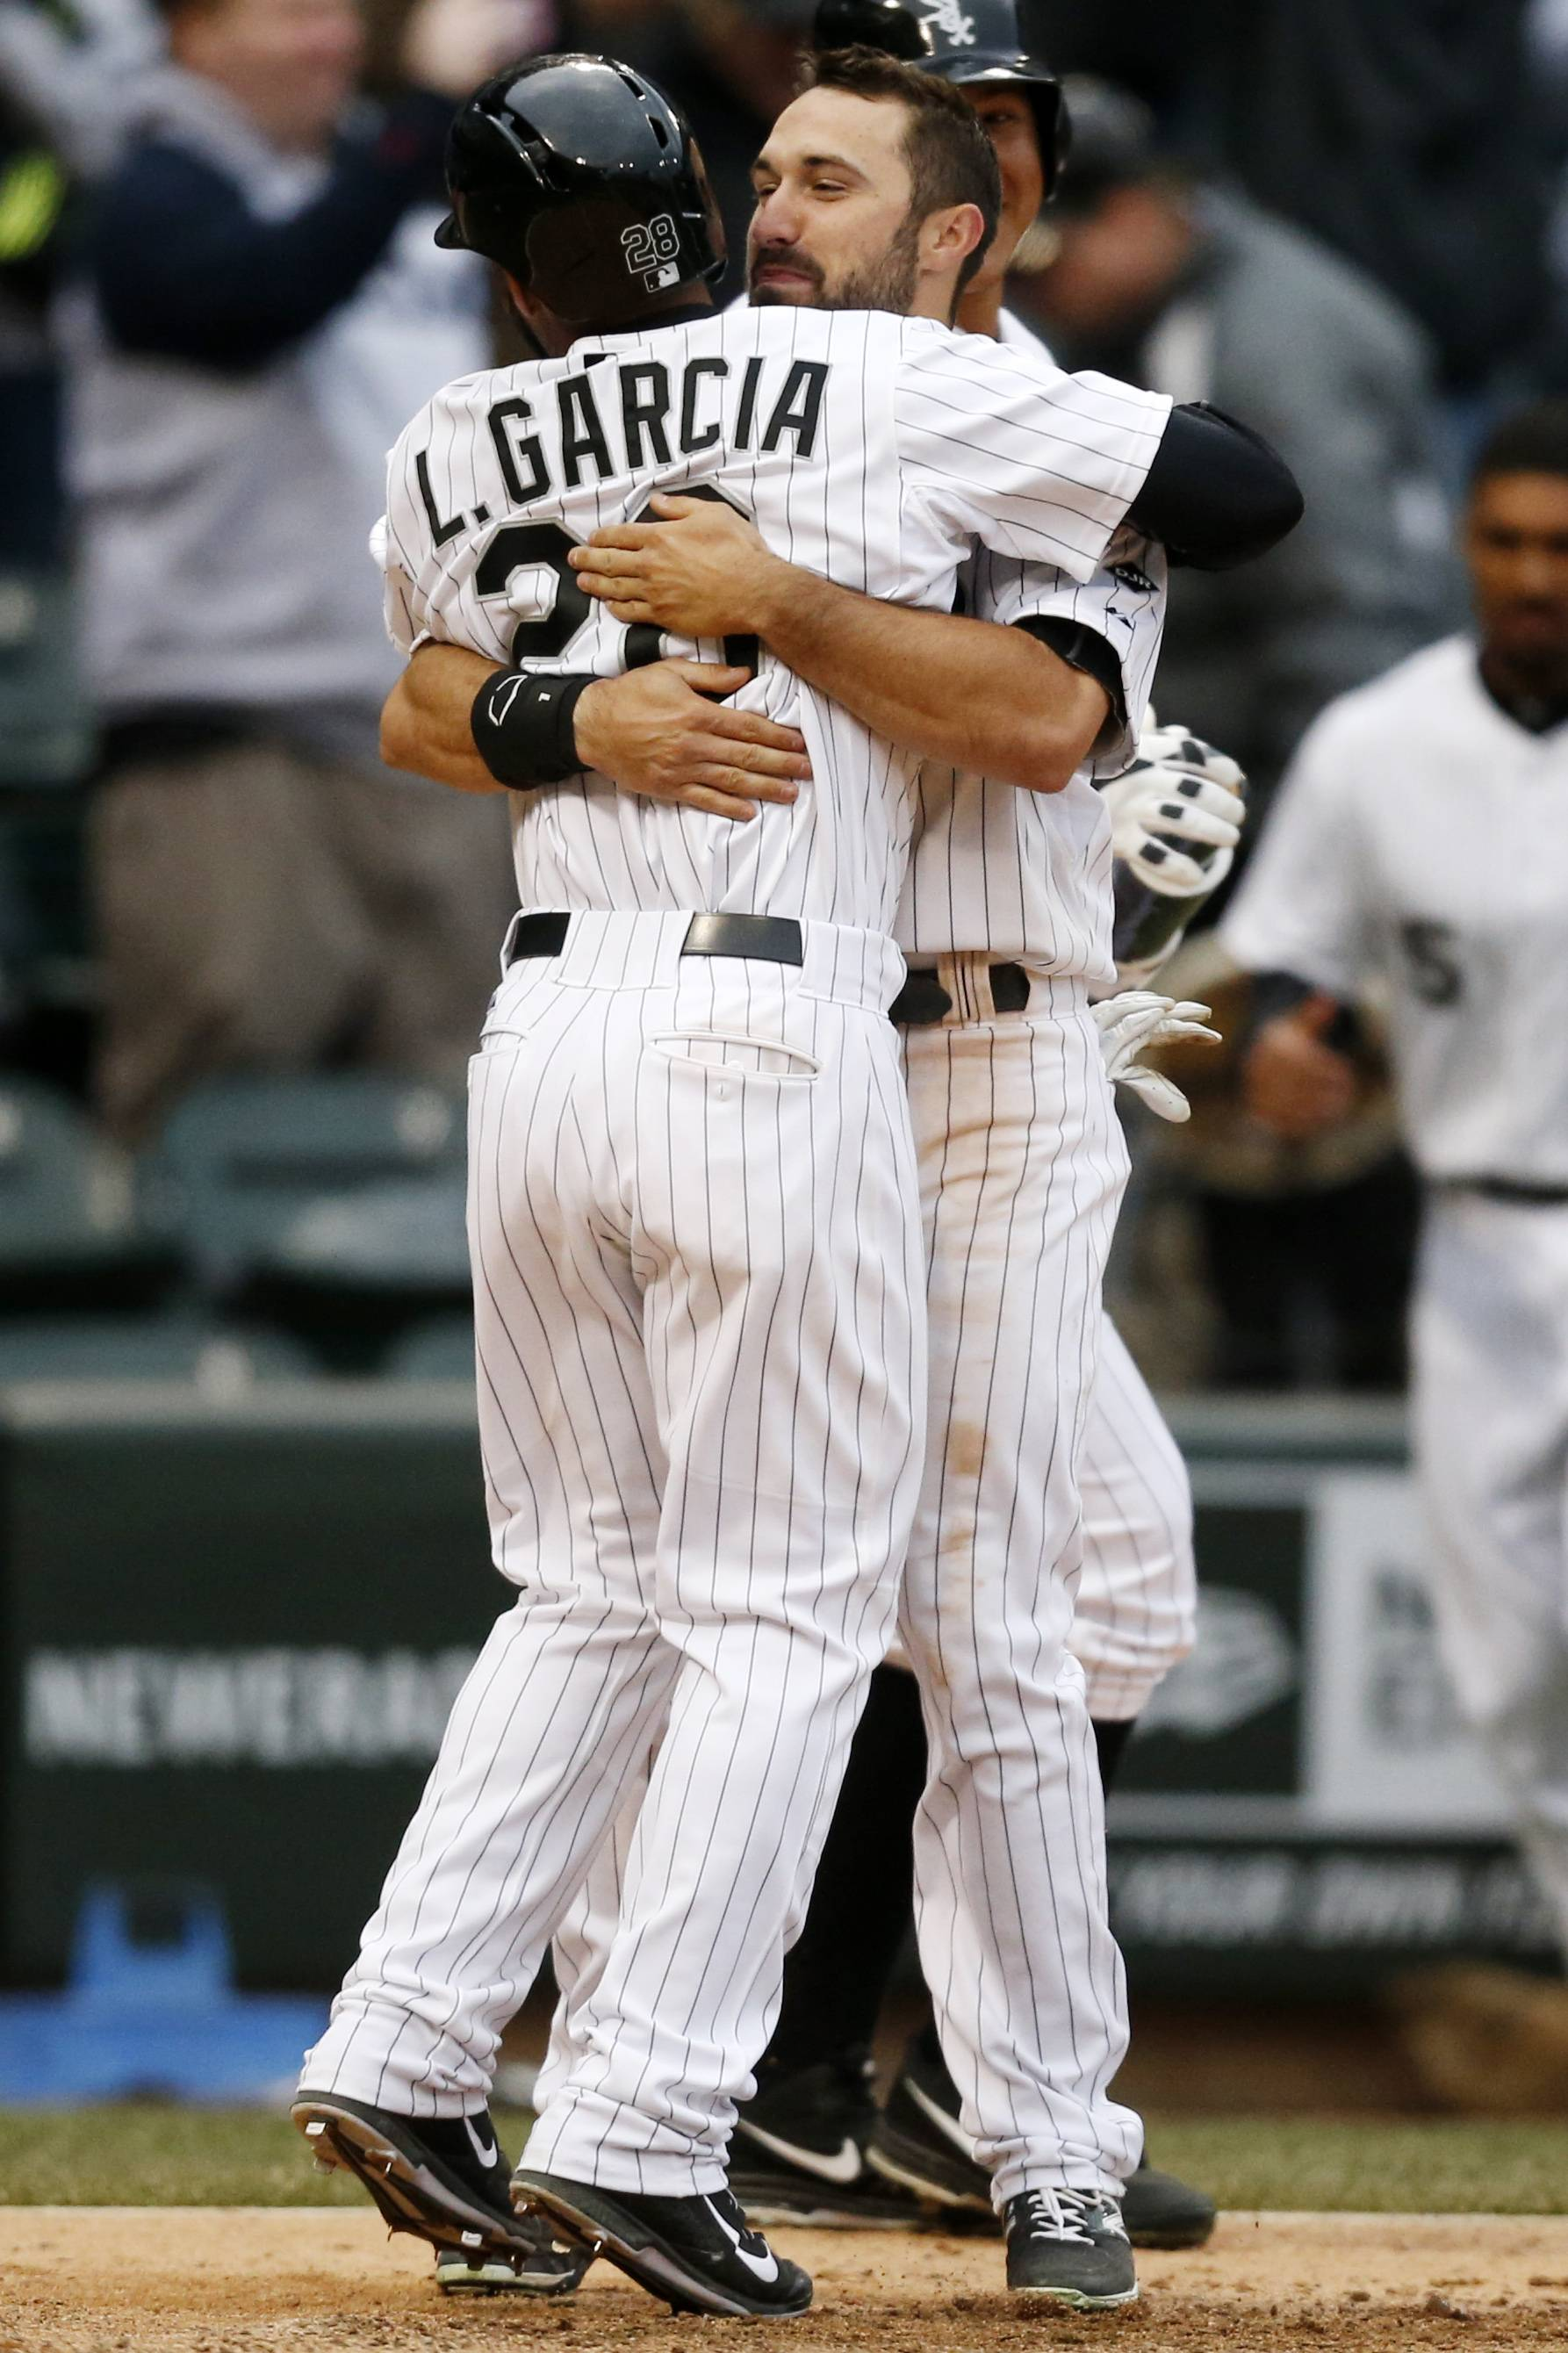 Chicago White Sox's Leury Garcia (28) celebrates with teammate Adam Eaton after scoring to end a baseball game in the 11th inning on Wednesday in Chicago. The White Sox won 7-6.